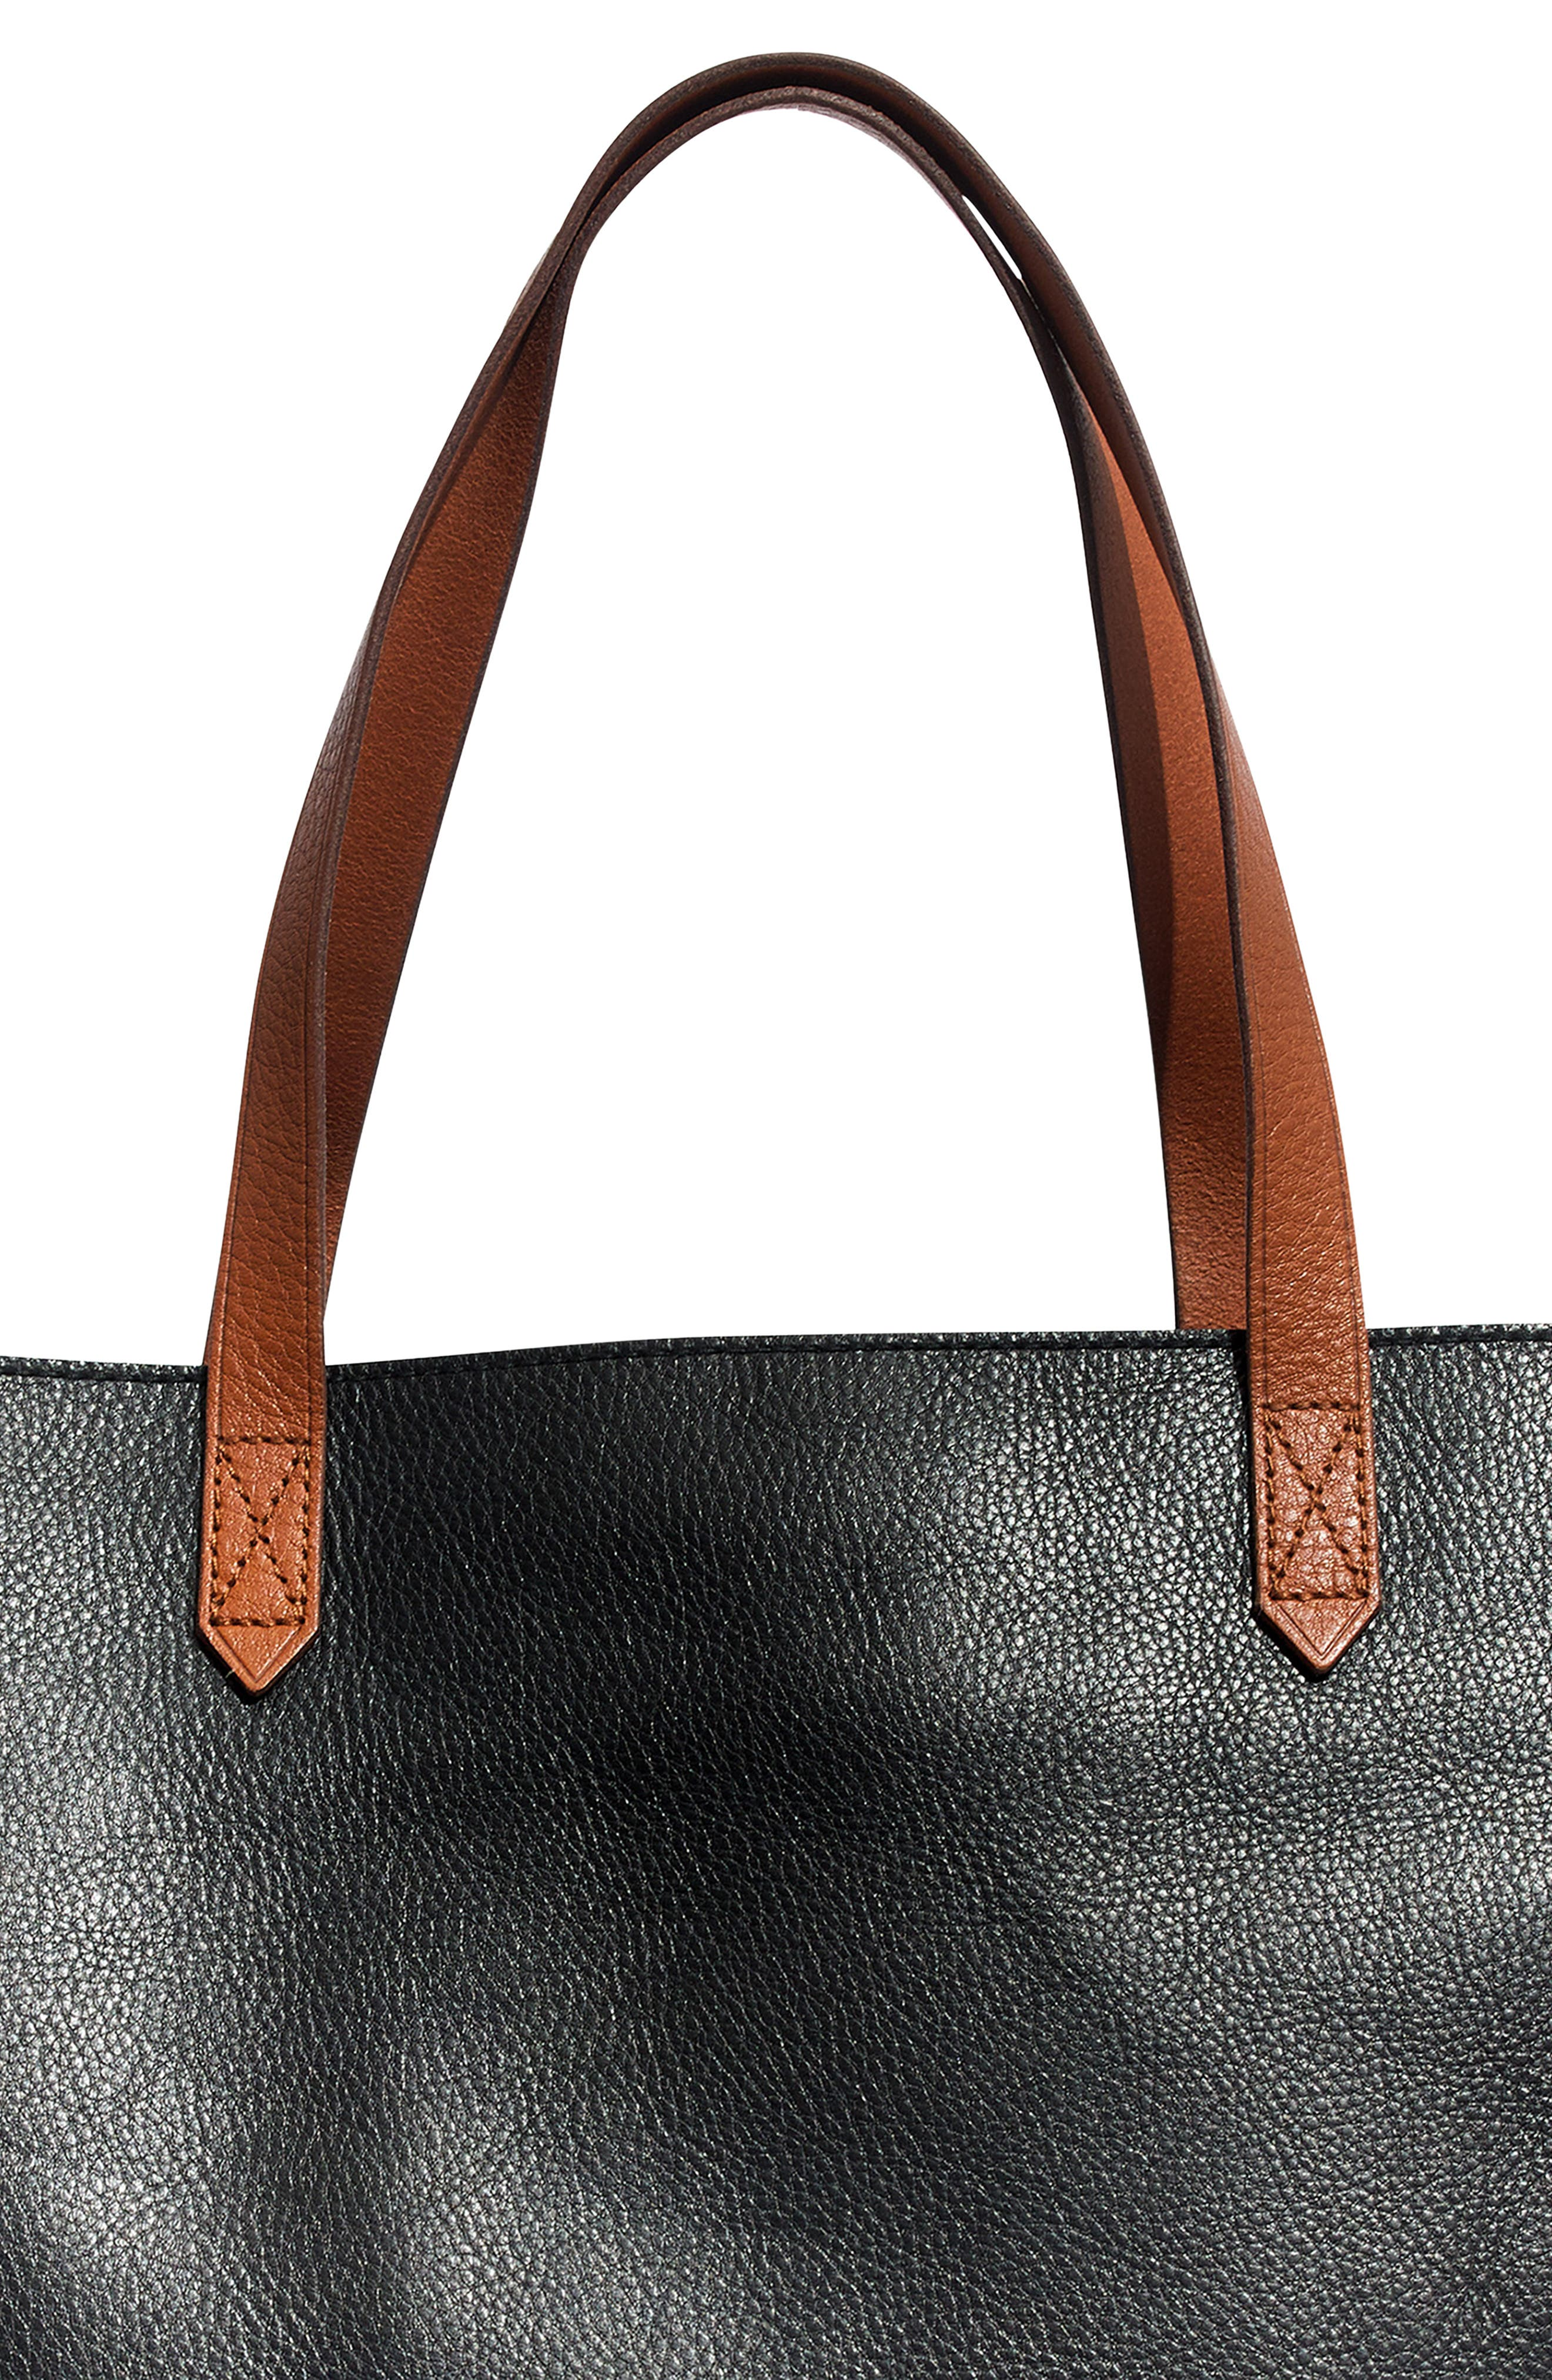 MADEWELL, Zip Top Transport Leather Tote, Alternate thumbnail 8, color, TRUE BLACK W/ BROWN